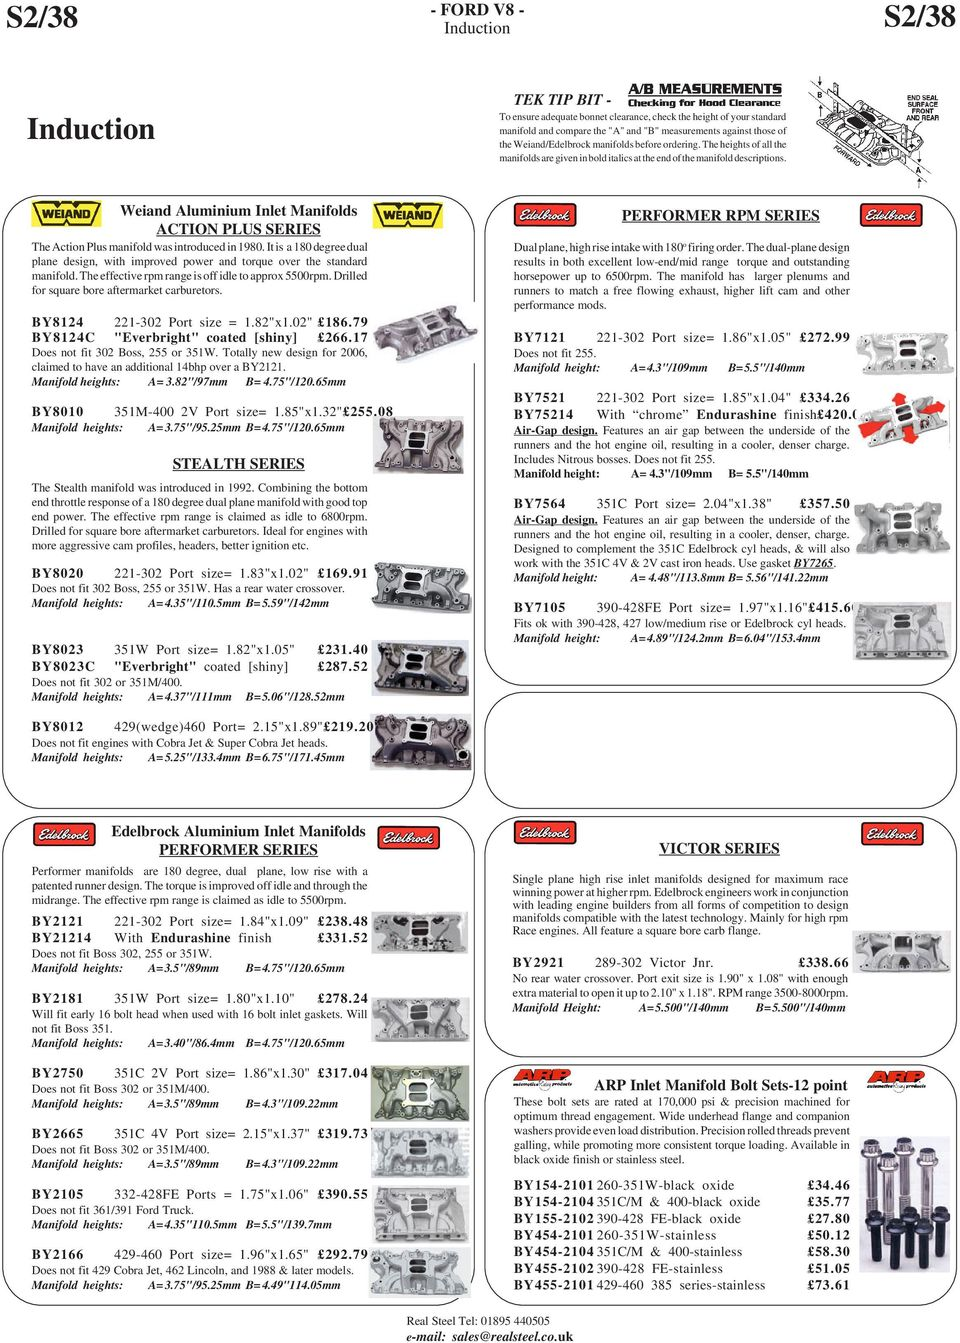 This Is Part 2 On Our Website Through To And Including Page S2 40 Pdf Ford Electronic Ignition Wiring Diagram Dual Plane Weiand Aluminium Inlet Manifolds Action Plus Series The Manifold Was Introduced In 1980